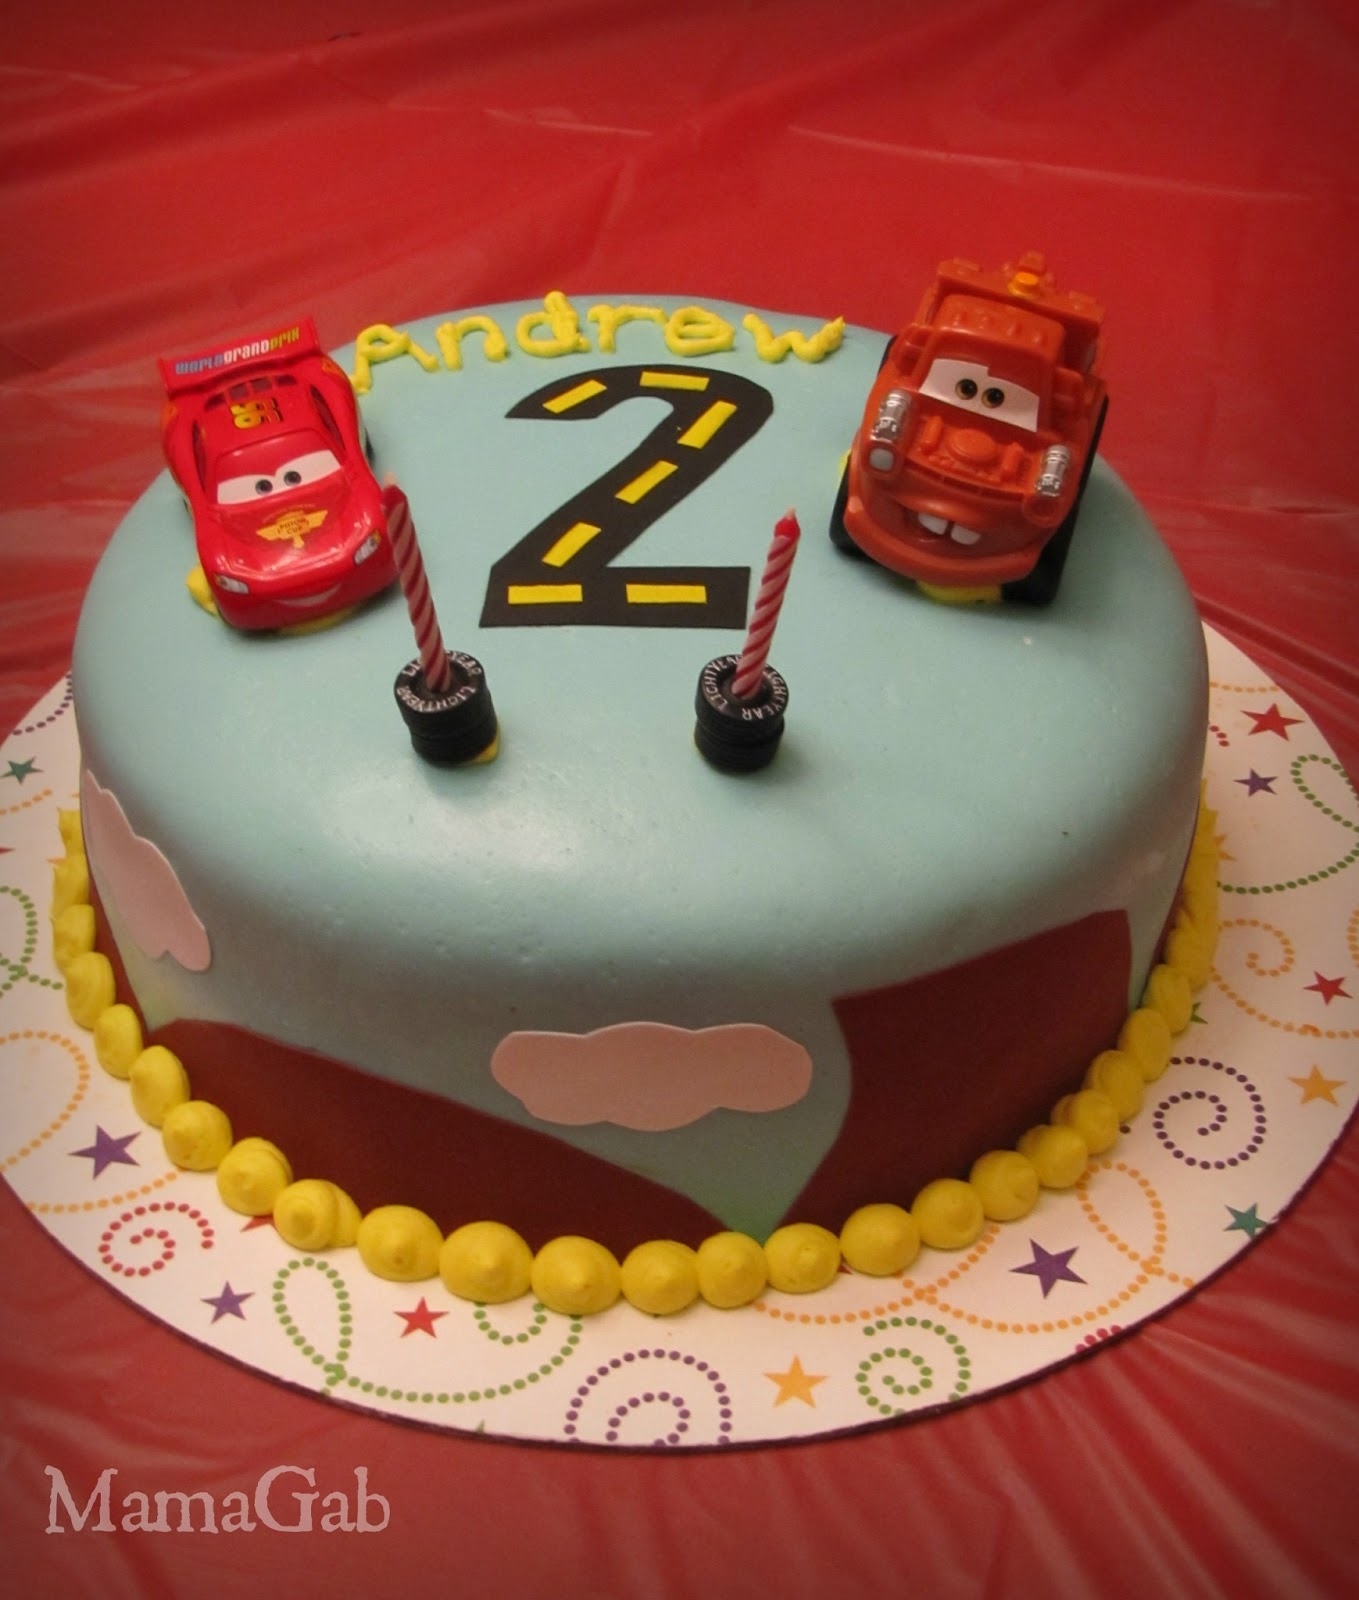 Making Birthday Cakes At Home The Cars Cake Living With Food